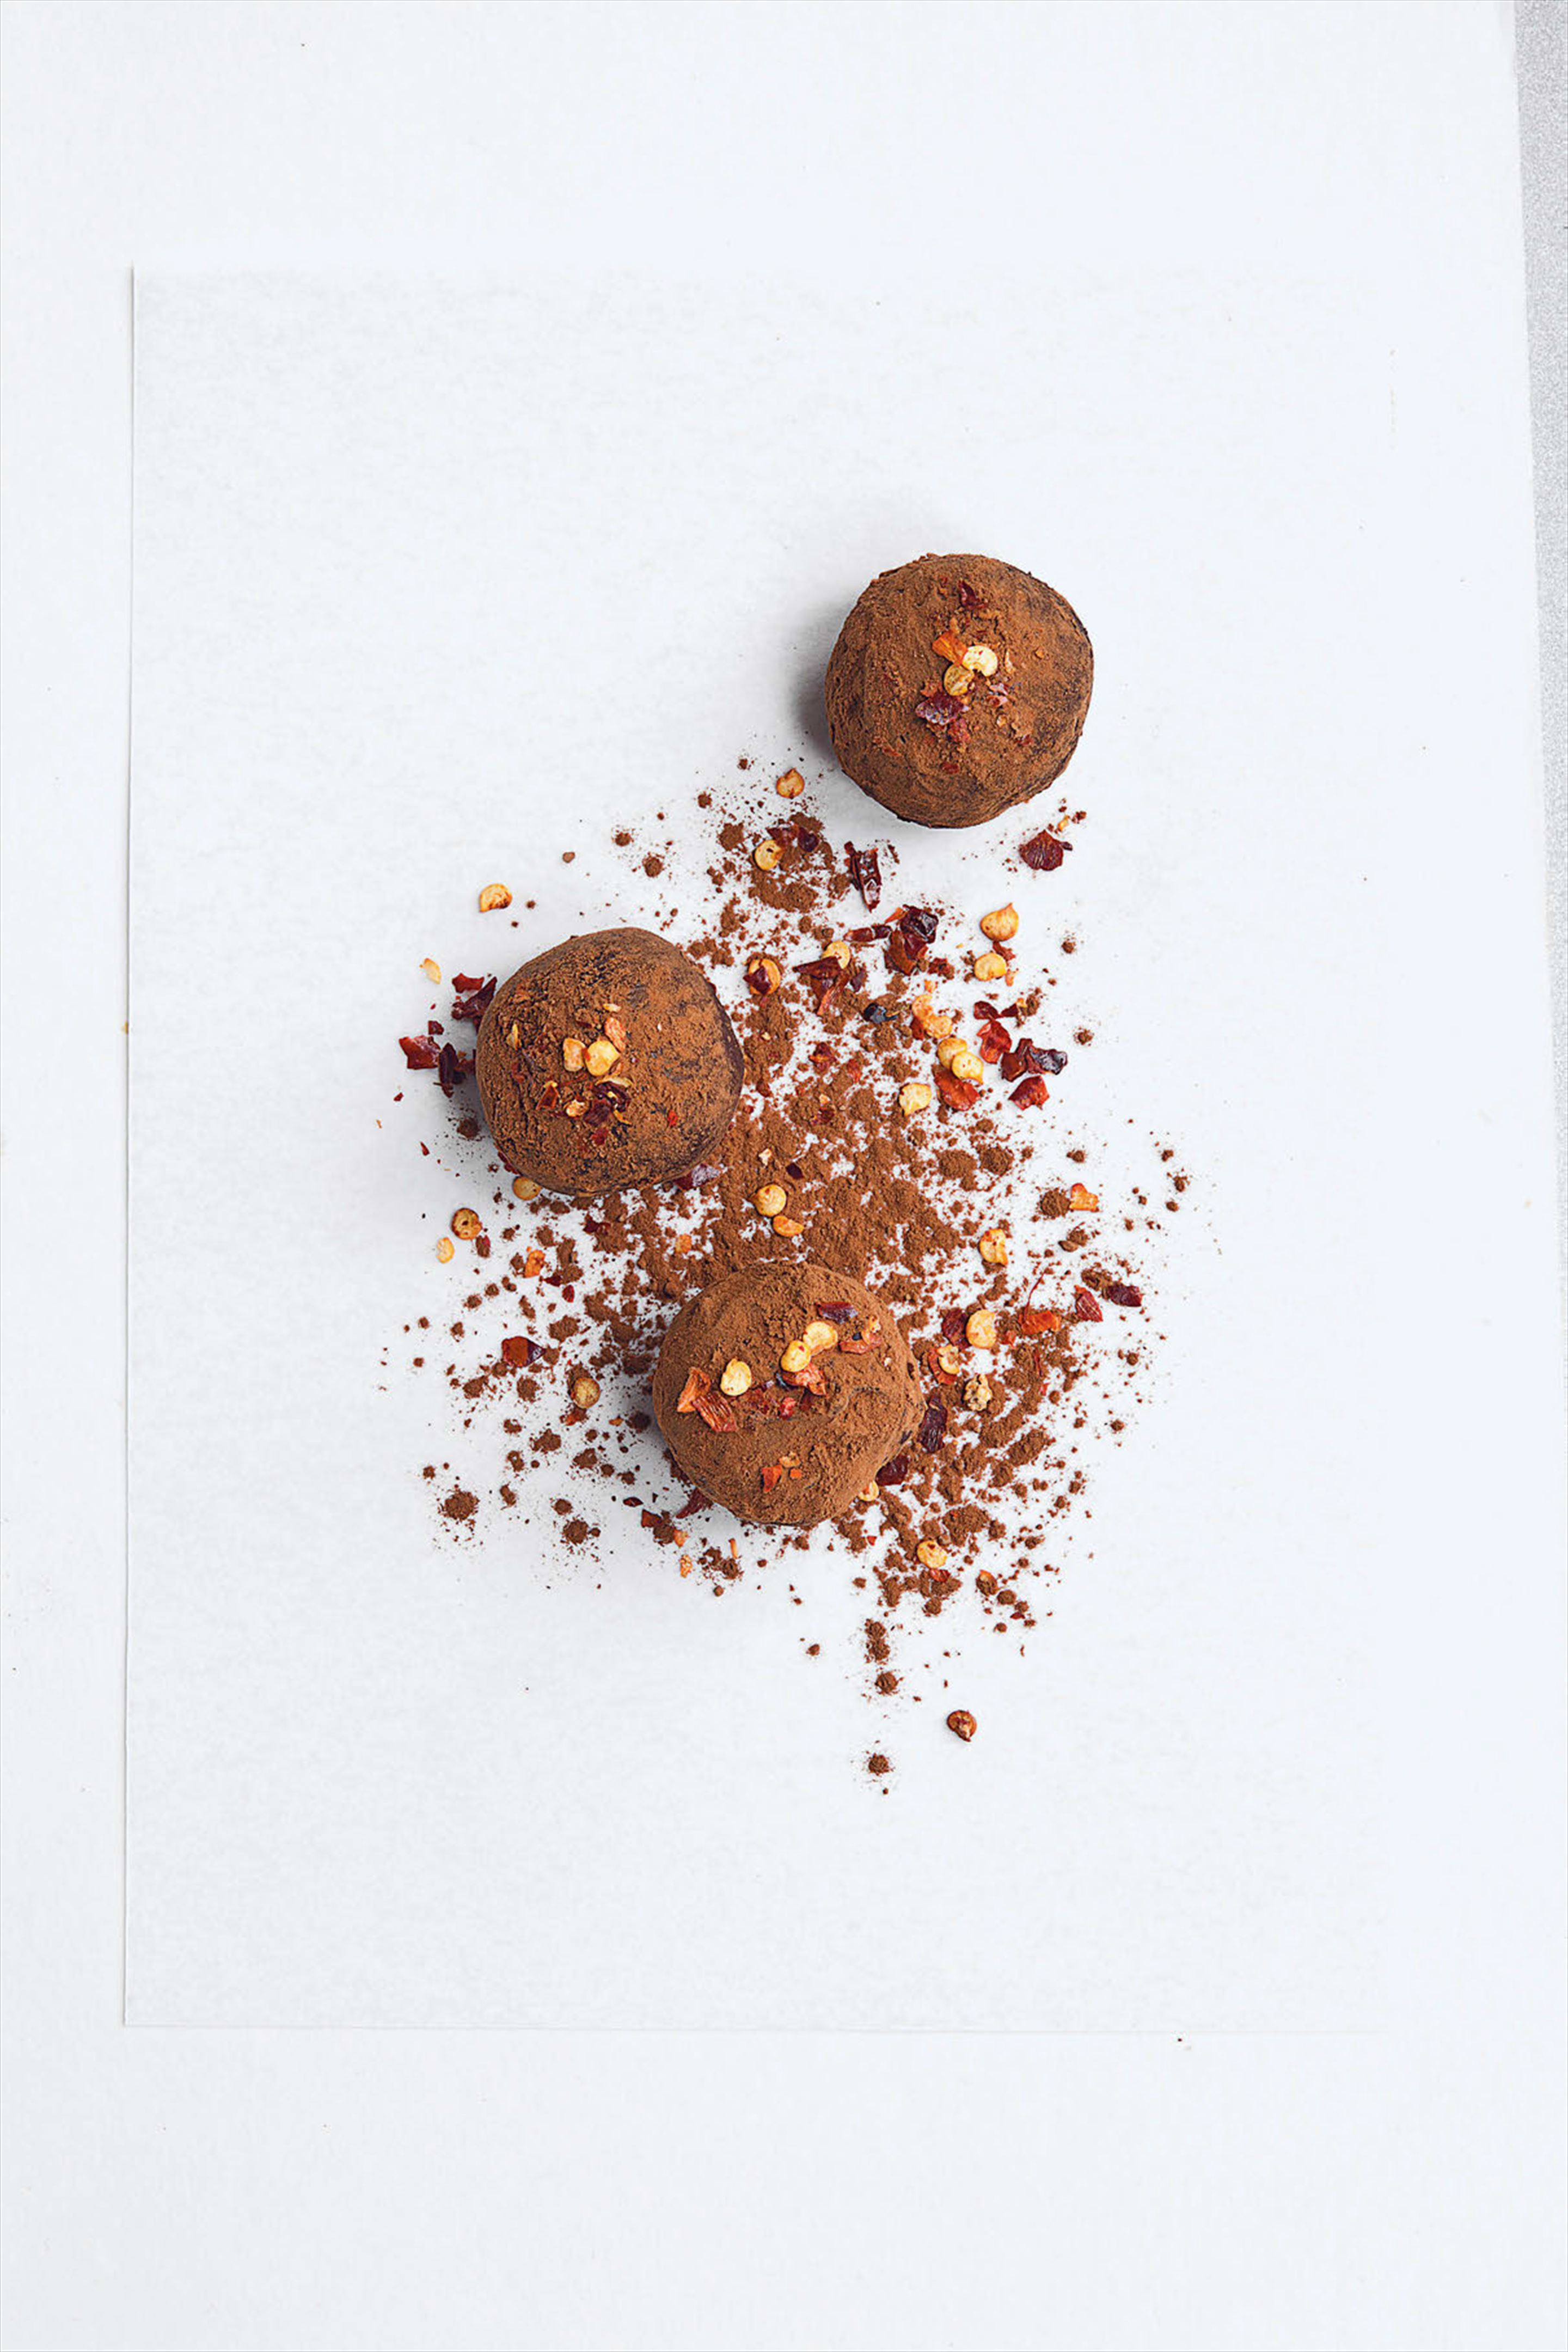 Chilli and cinnamon truffles